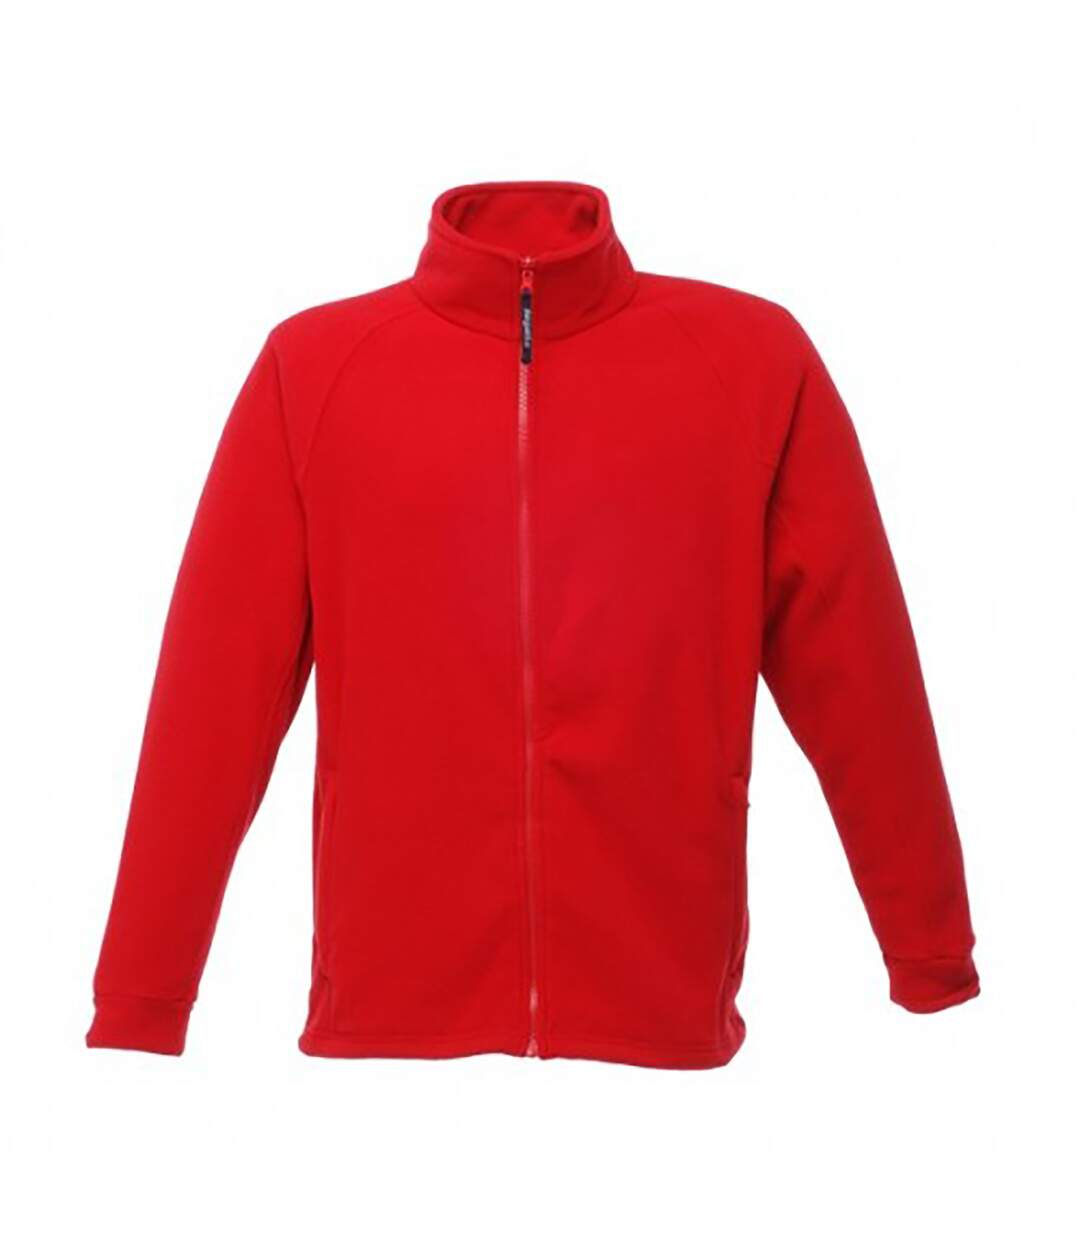 Regatta Mens Thor III Fleece Jacket (Classic Red) - UTBC824